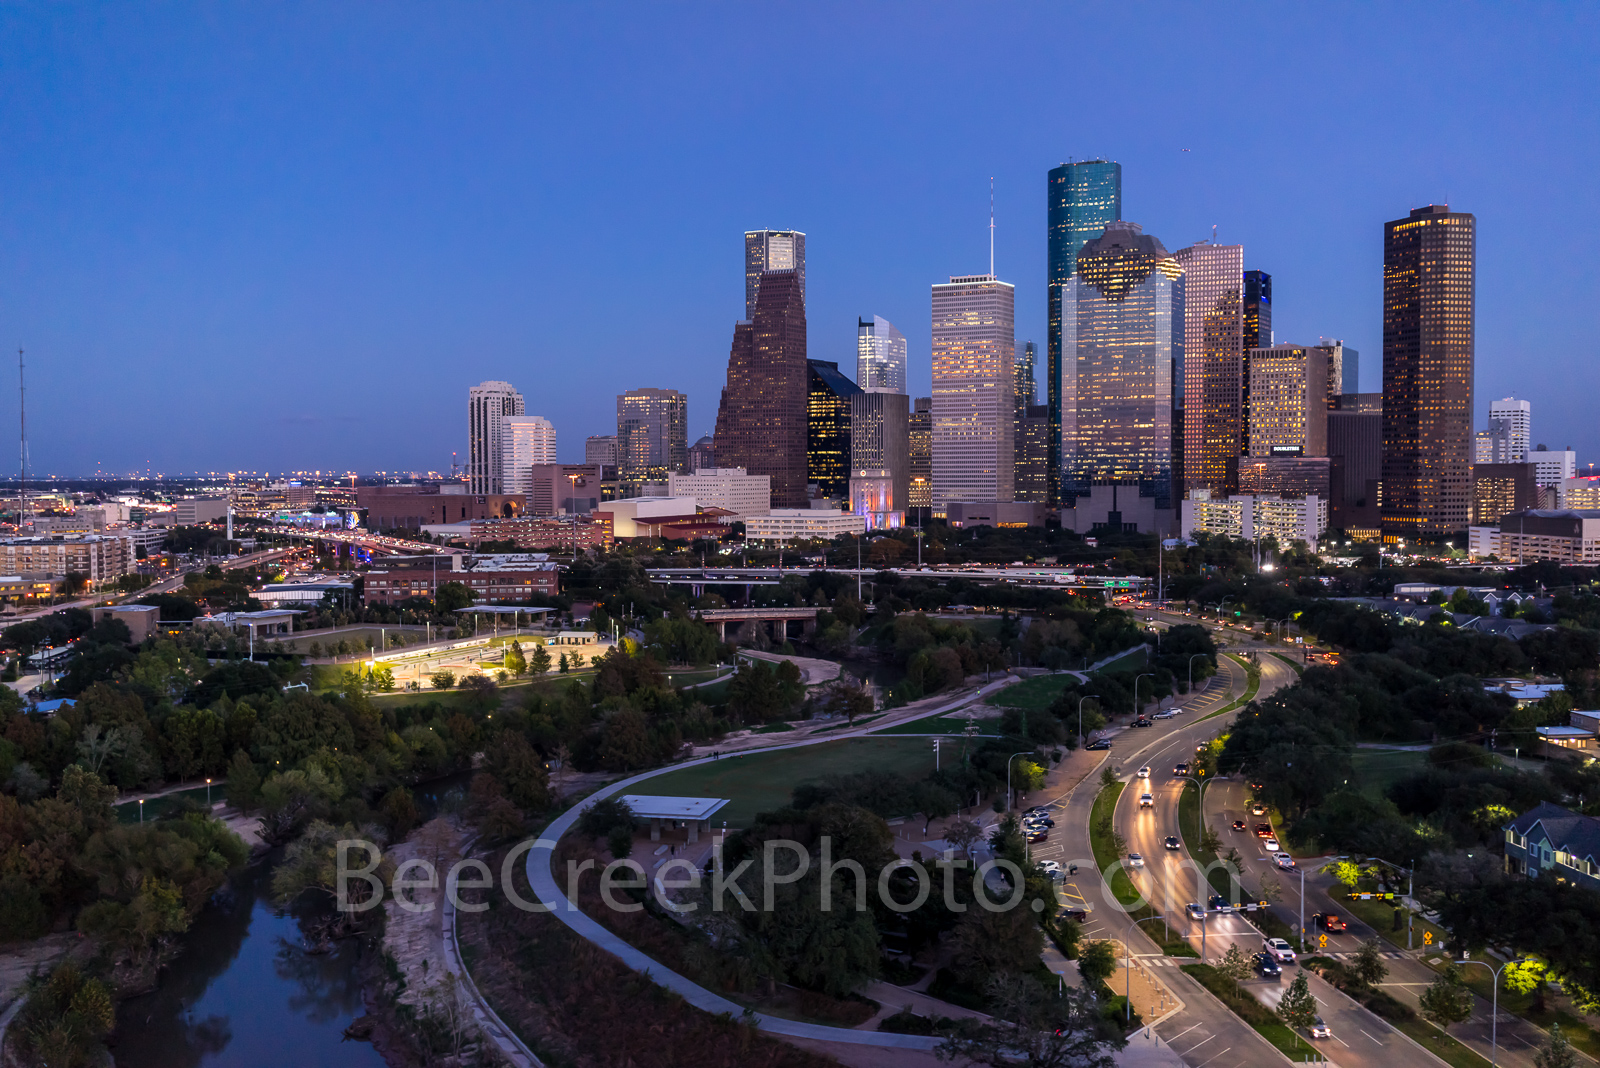 Houston skyline, Houston cityscape, aerial, twilight, blue hour, Allen Parkway, Buffalo Bayou, downtown, city, threater district, museums, theater art, opera, music events, tallest buildings, southern, photo